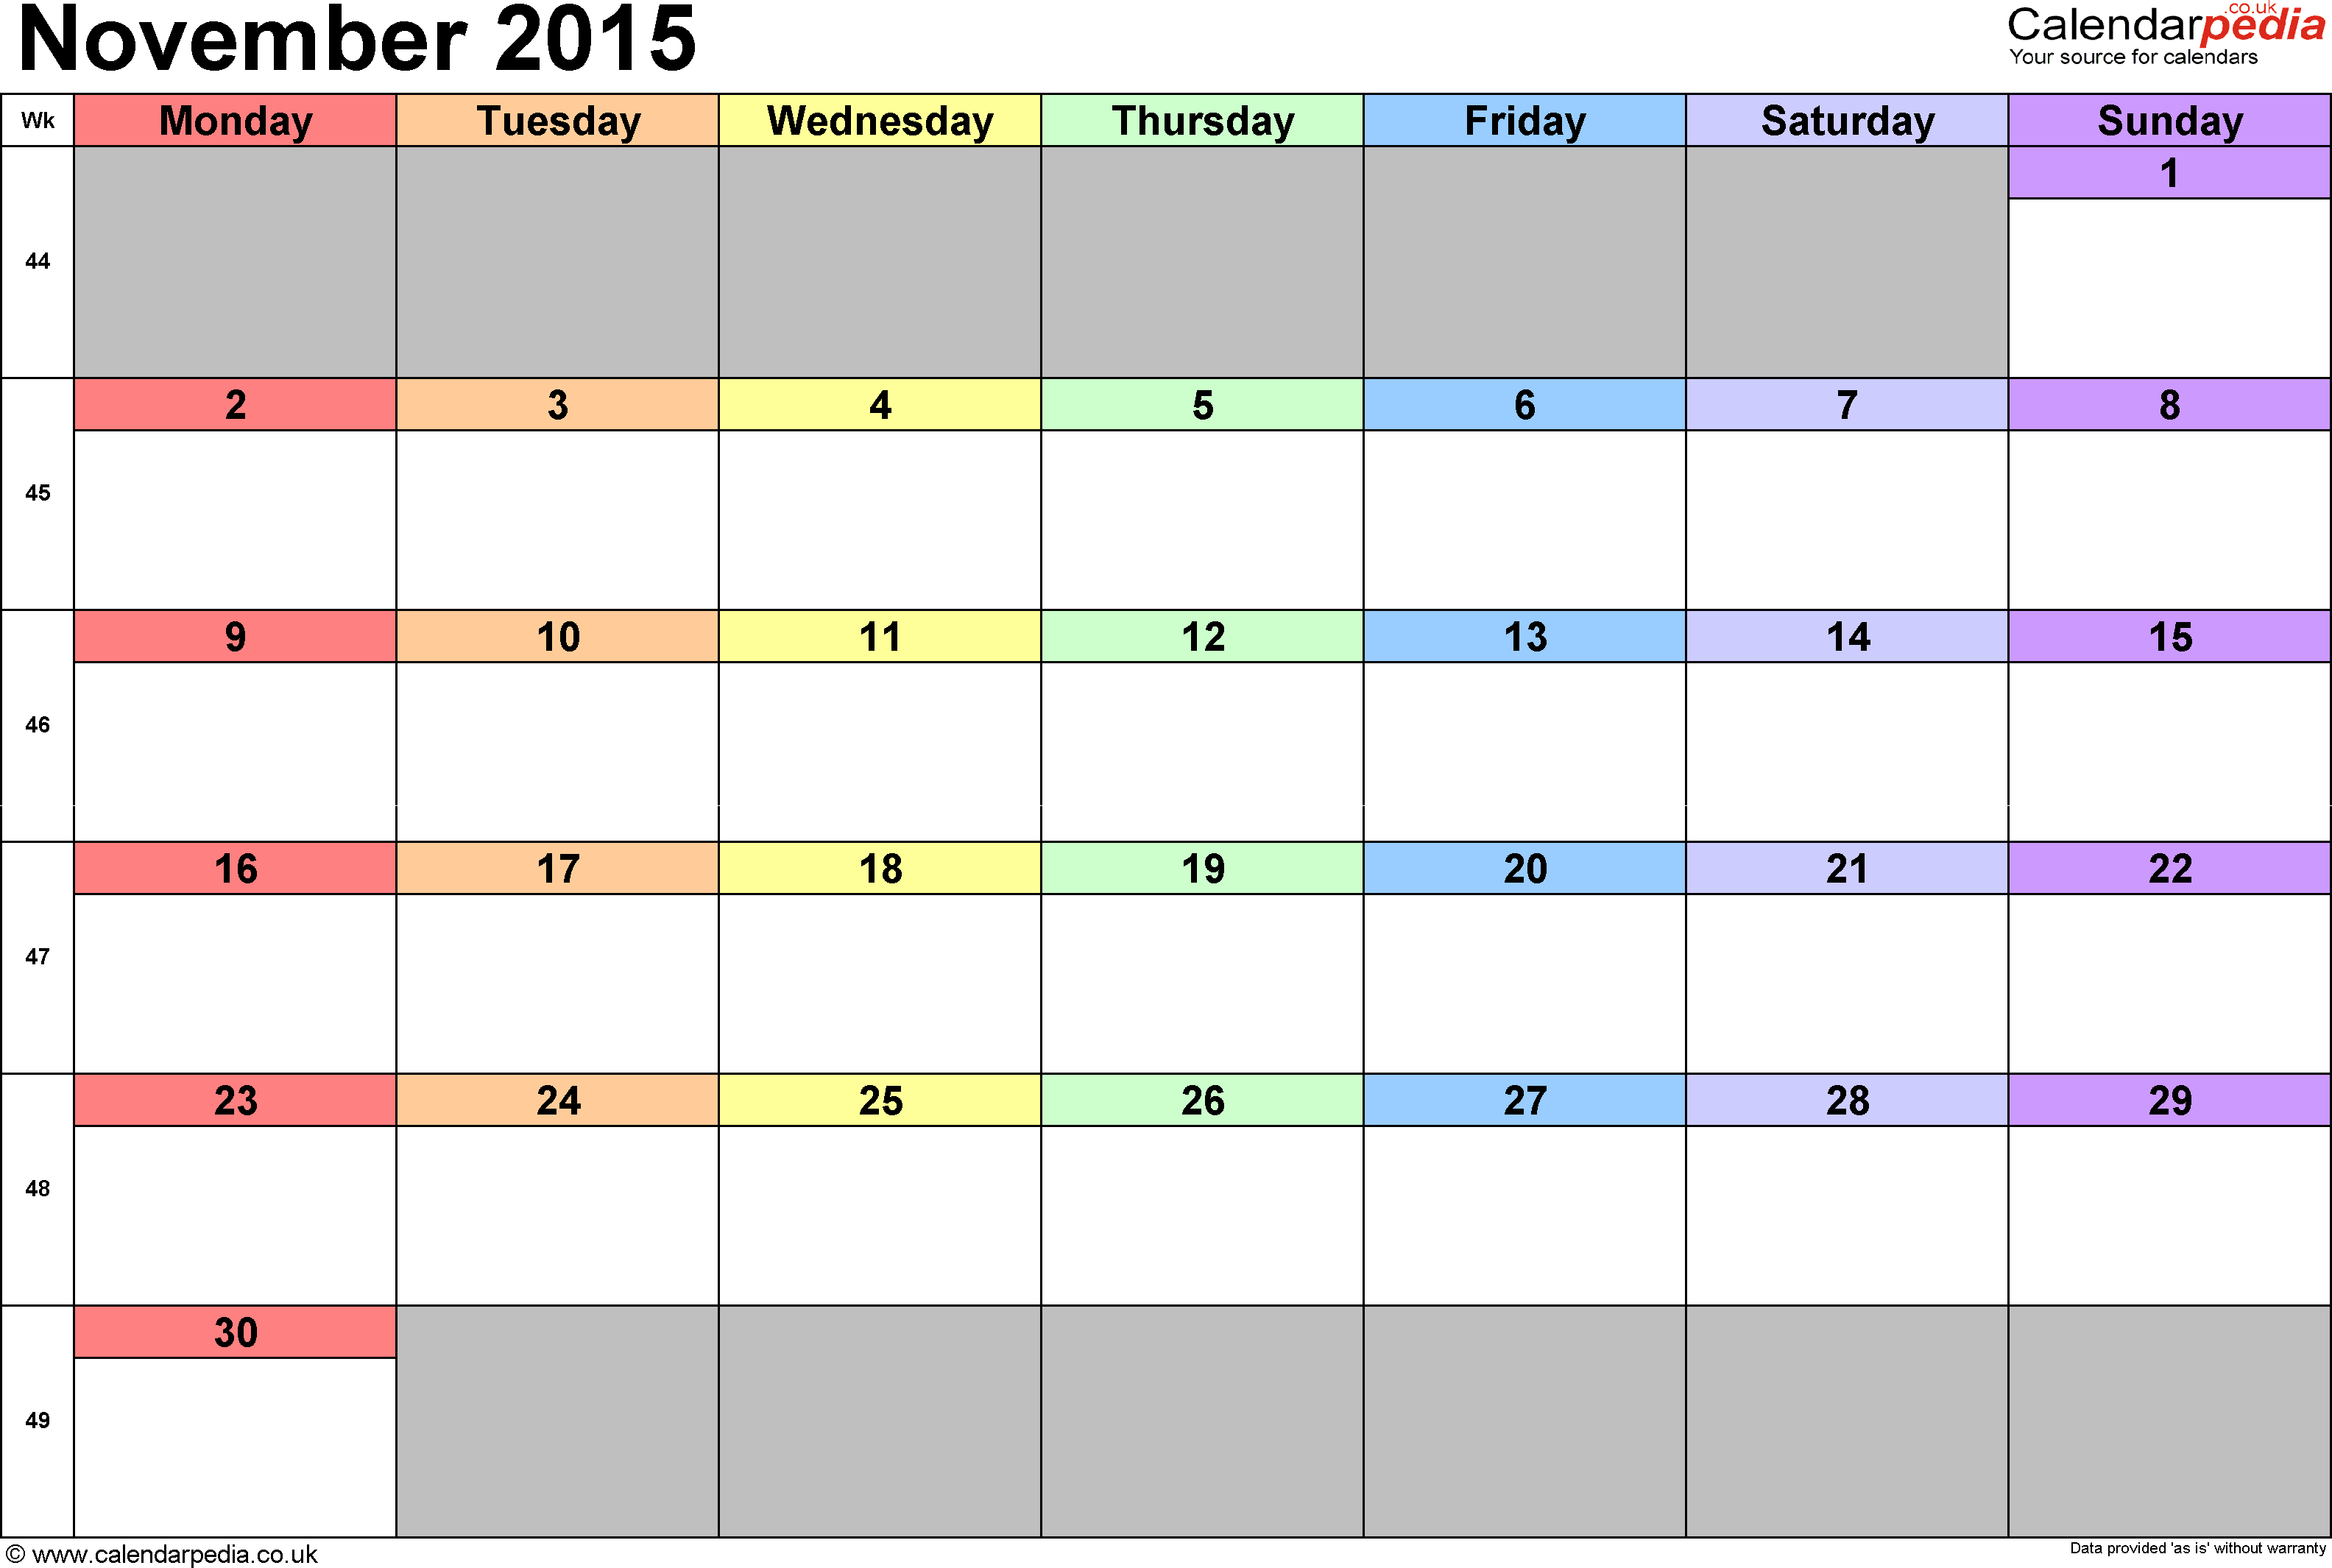 Calendar November 2015 Uk Bank Holidays Excelpdfword Templates